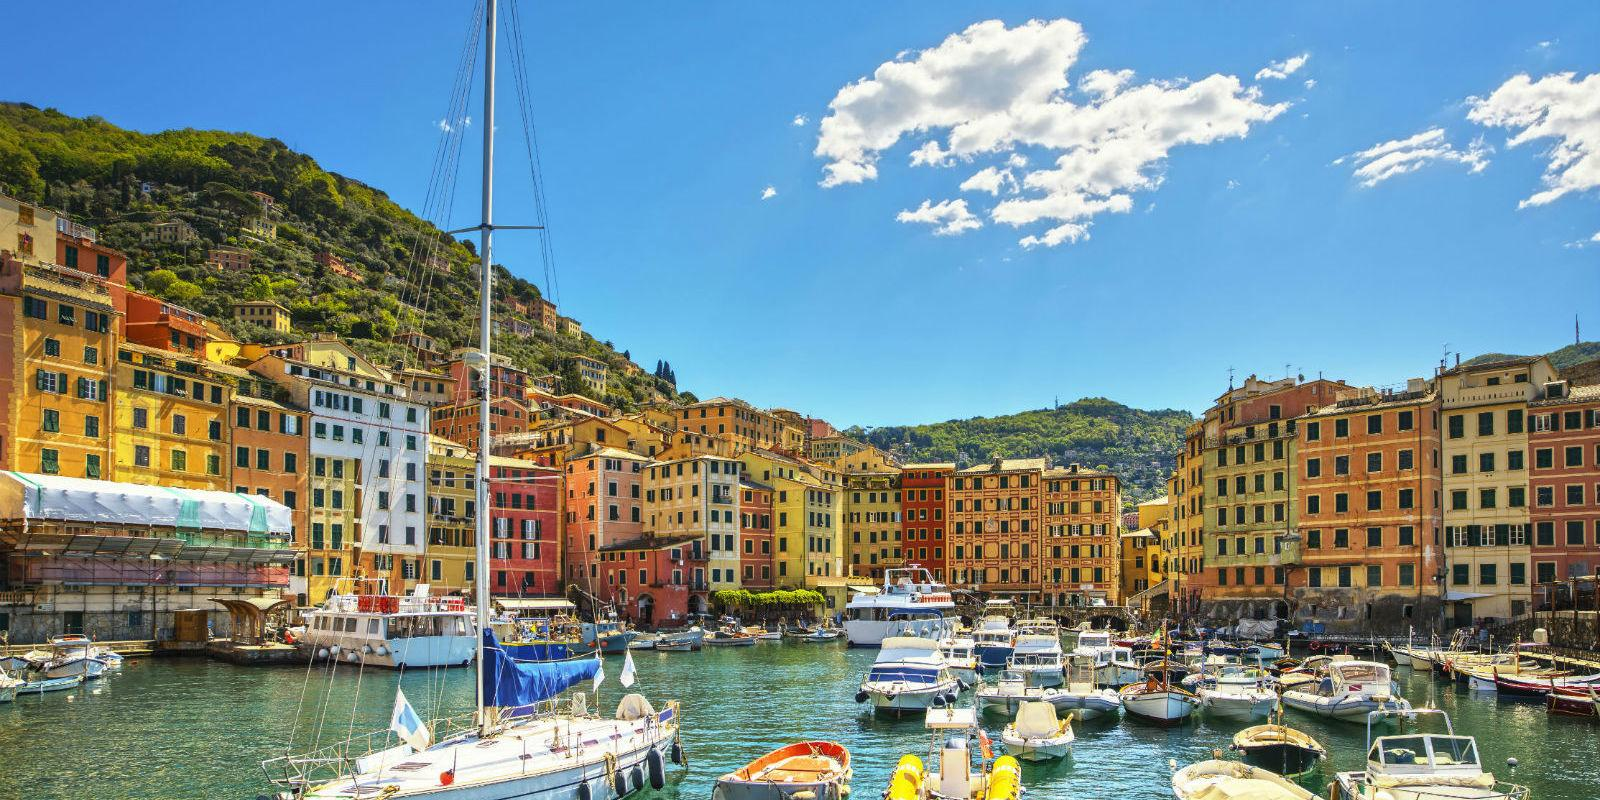 Sailing, sun and sea: direction Portofino!